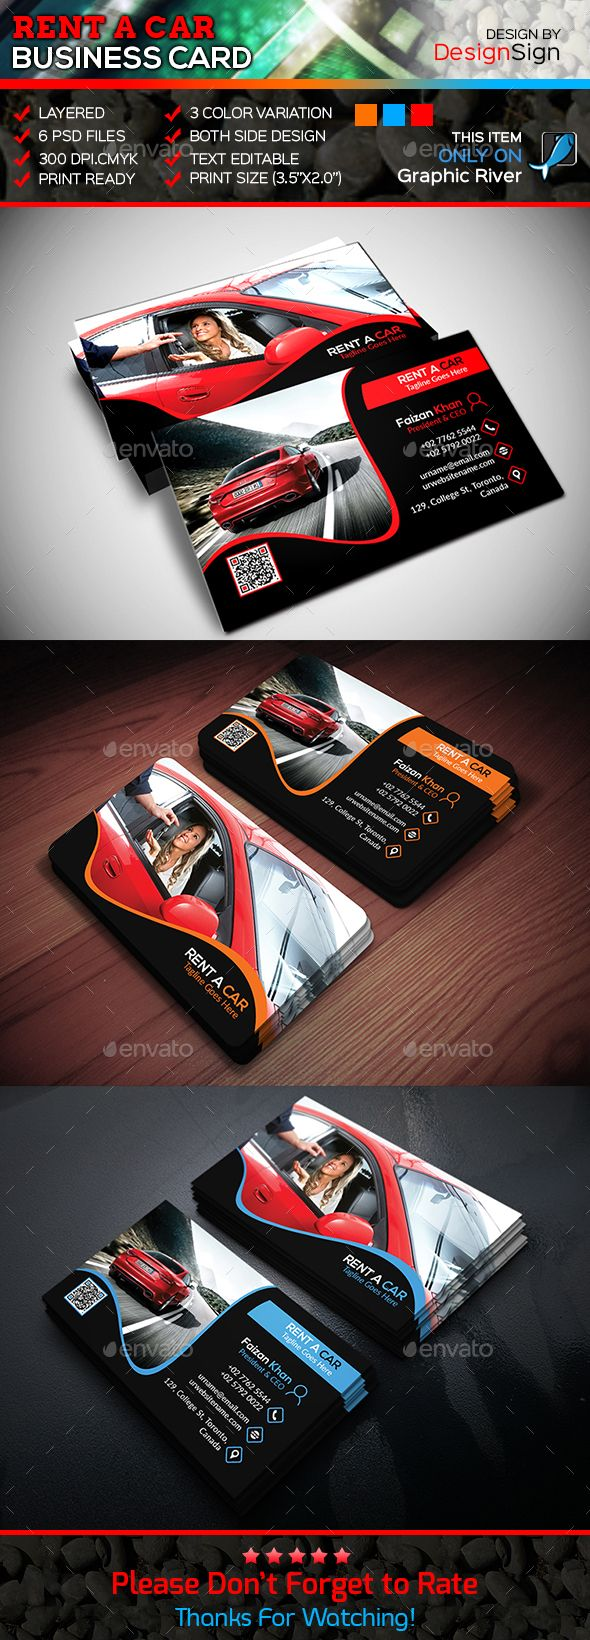 Rent A Car Business Card — Photoshop PSD #industry Specific #creative • Available here → https://graphicriver.net/item/rent-a-car-business-card/13920233?ref=pxcr